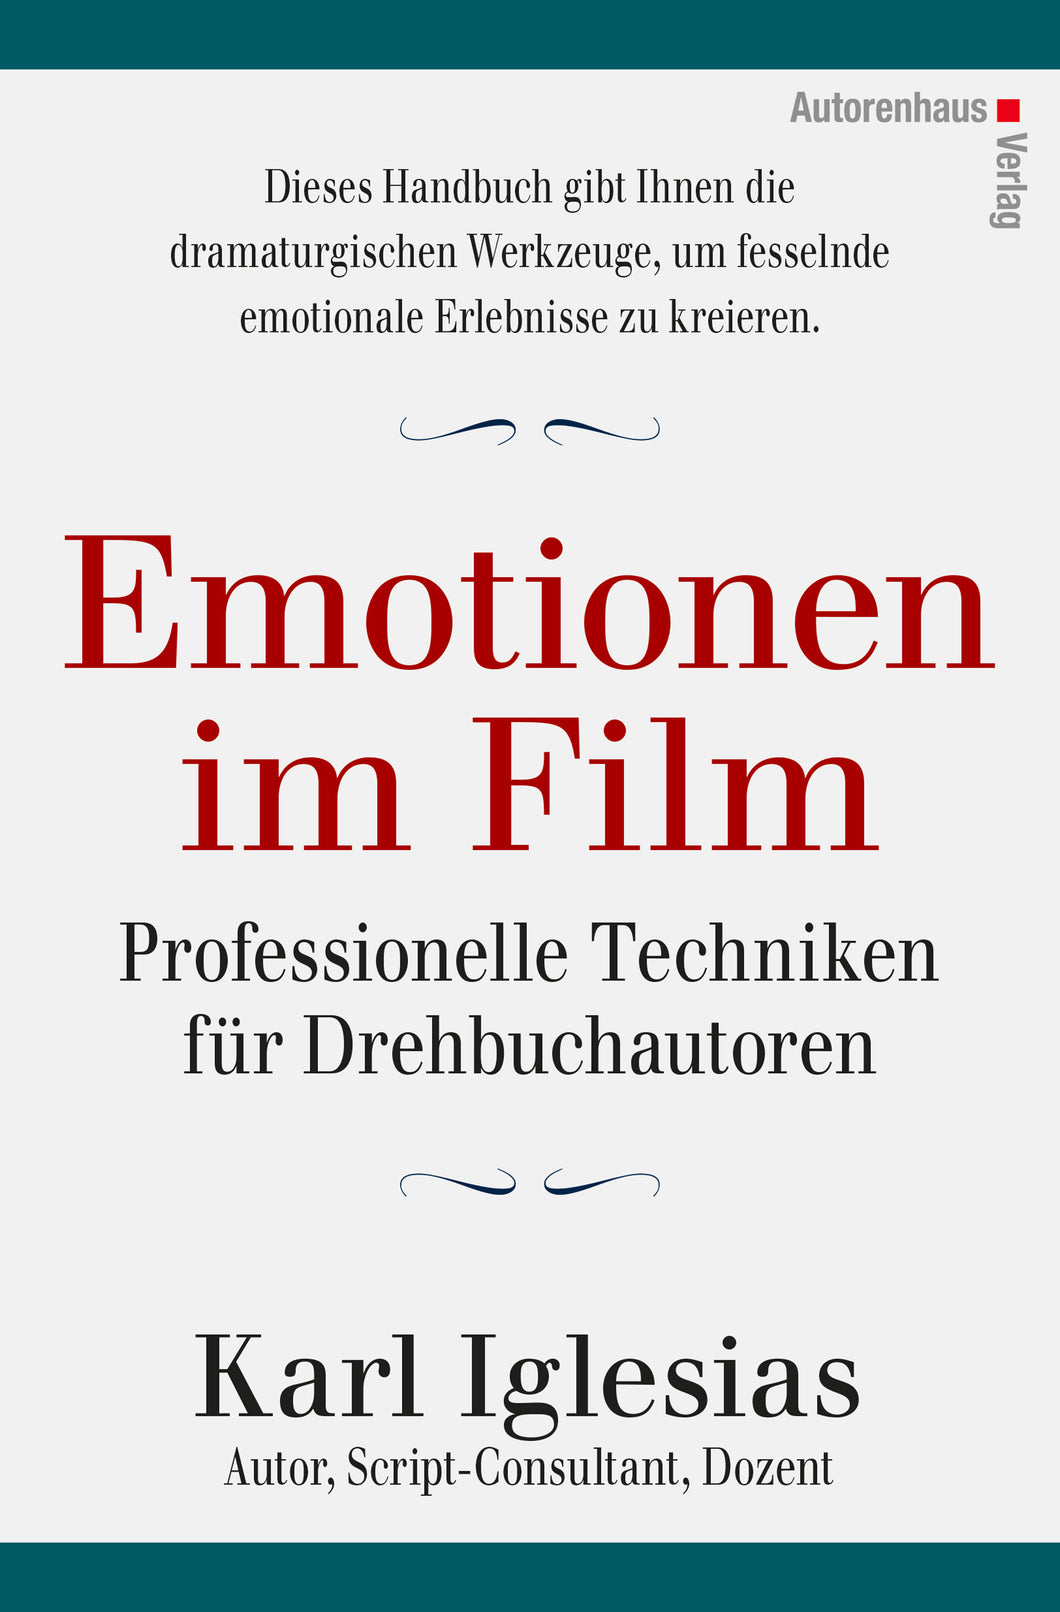 Karl Iglesias: Emotionen im Film, Autorenhaus